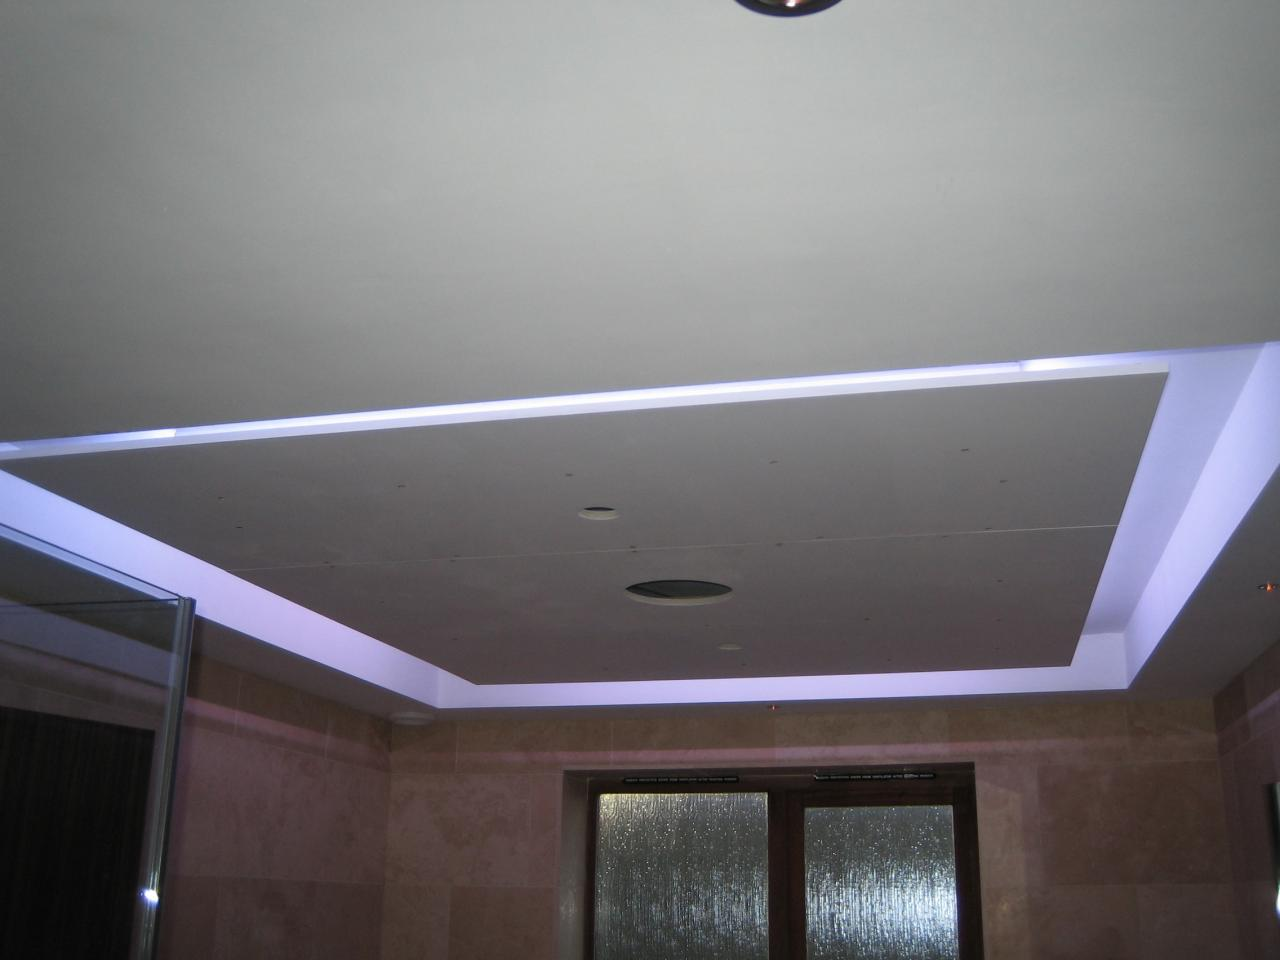 Led suspended ceiling lights tips for buyers warisan for Drop ceiling images